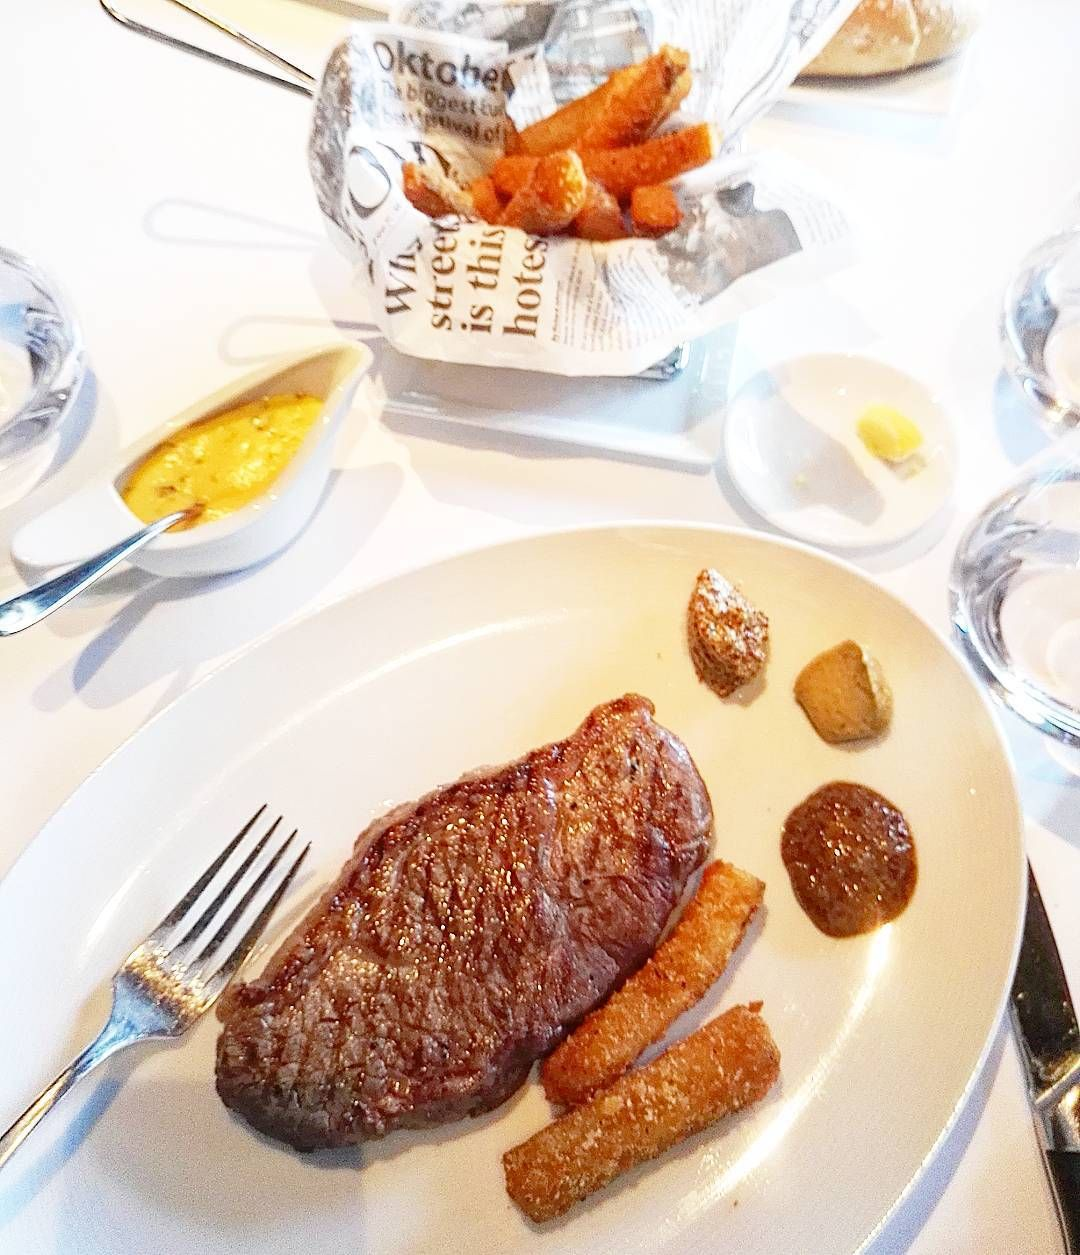 Business lunches are a great way to try new restaurants